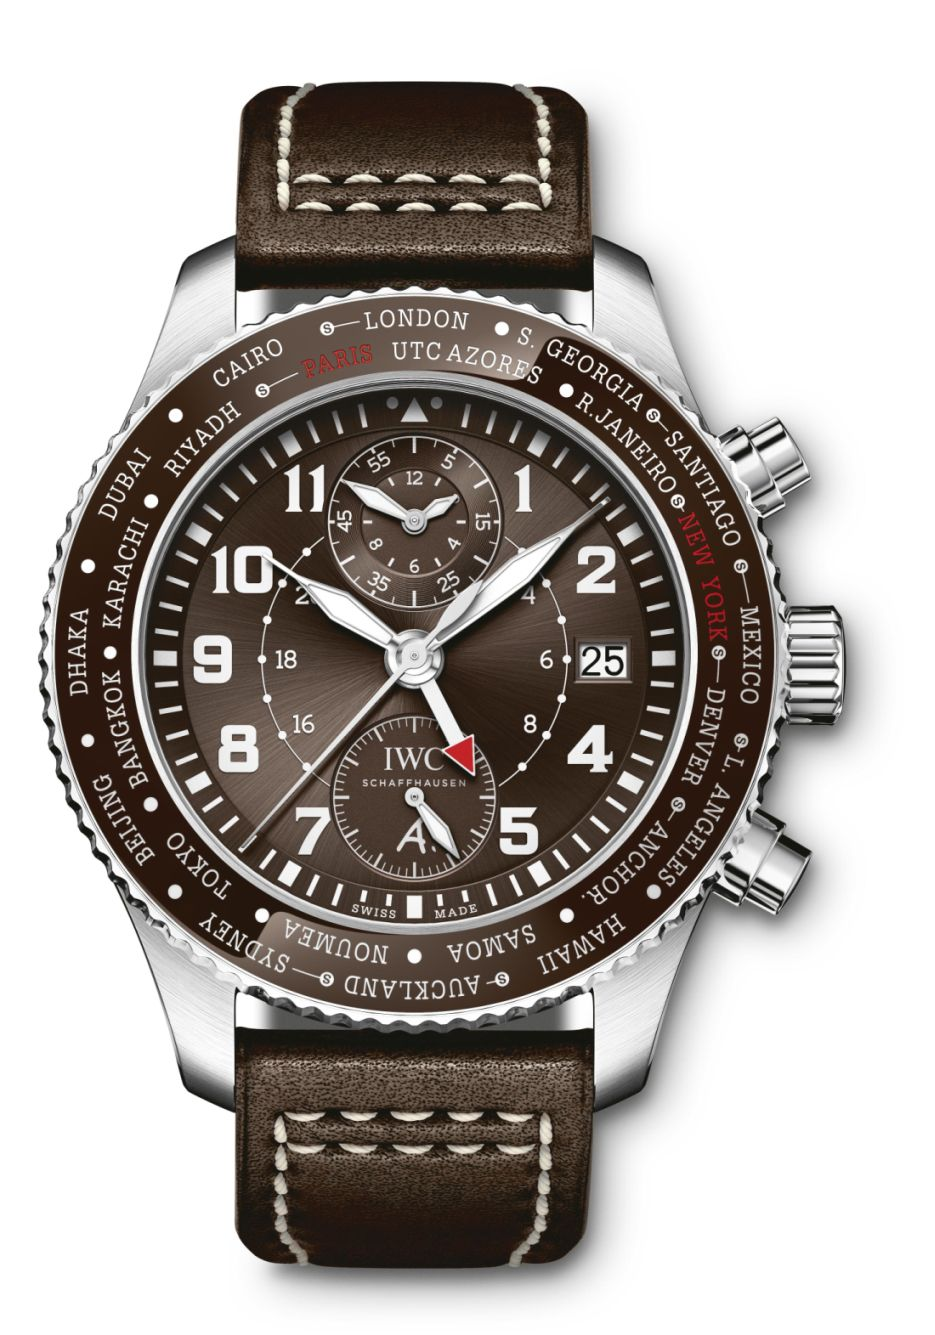 IWC Pilot Timezoner Chronograph Edition 80 Years Flight to New York, IWC Pilot Timezoner Chronograph, IWC Pilot Timezoner Brown, IWC Timezoner, IWC Timezoner Brown, IWC IW395003, IW395003